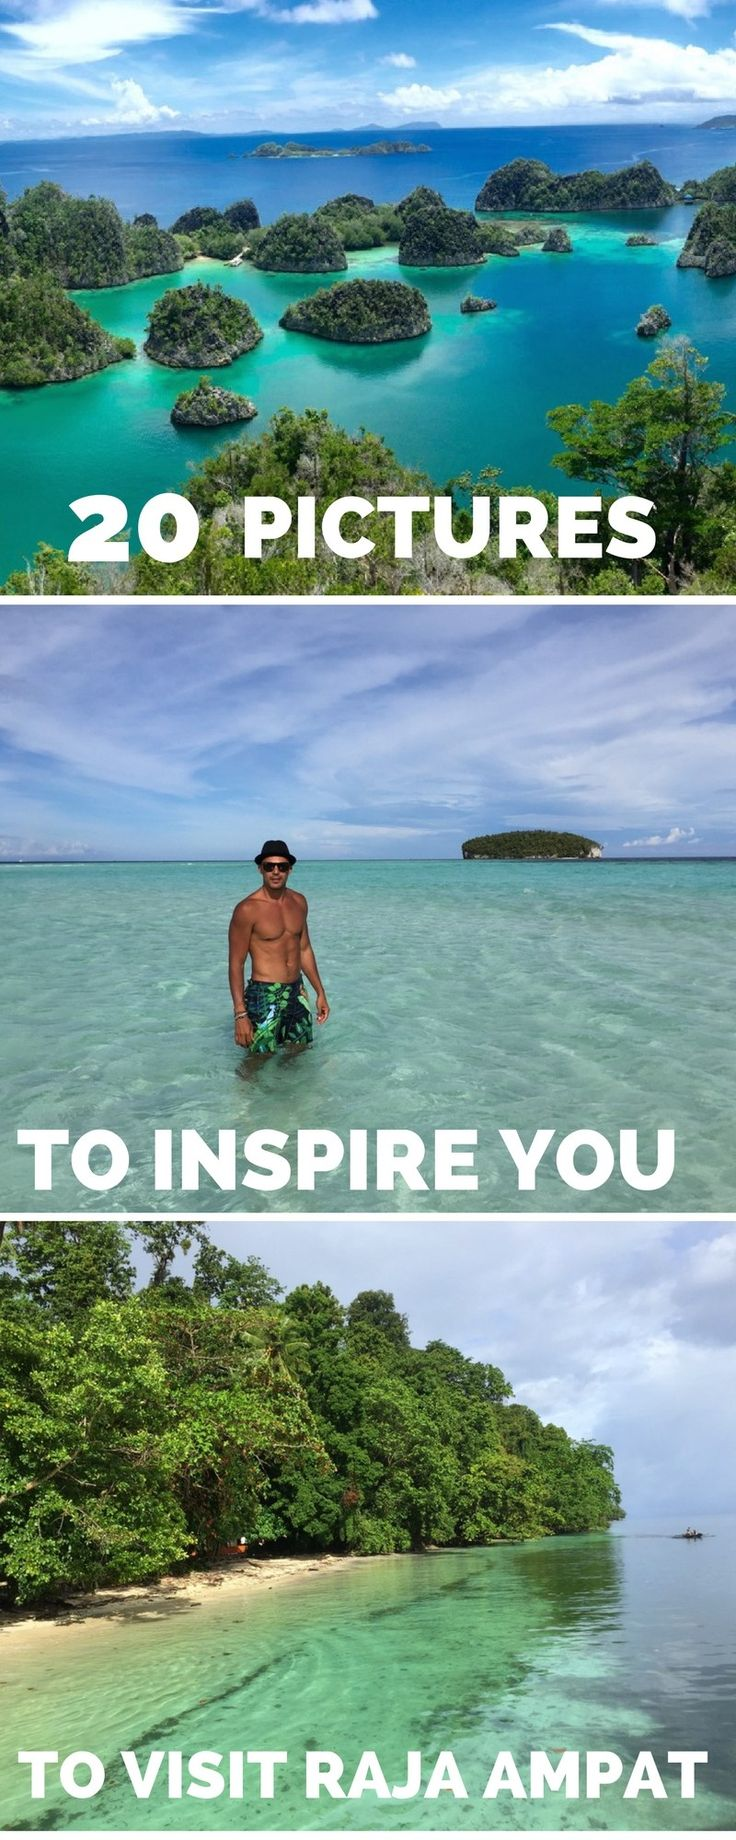 20 pictures to inspire you to visit Raja Ampat, Indonesia, one of my favourite places in the world.